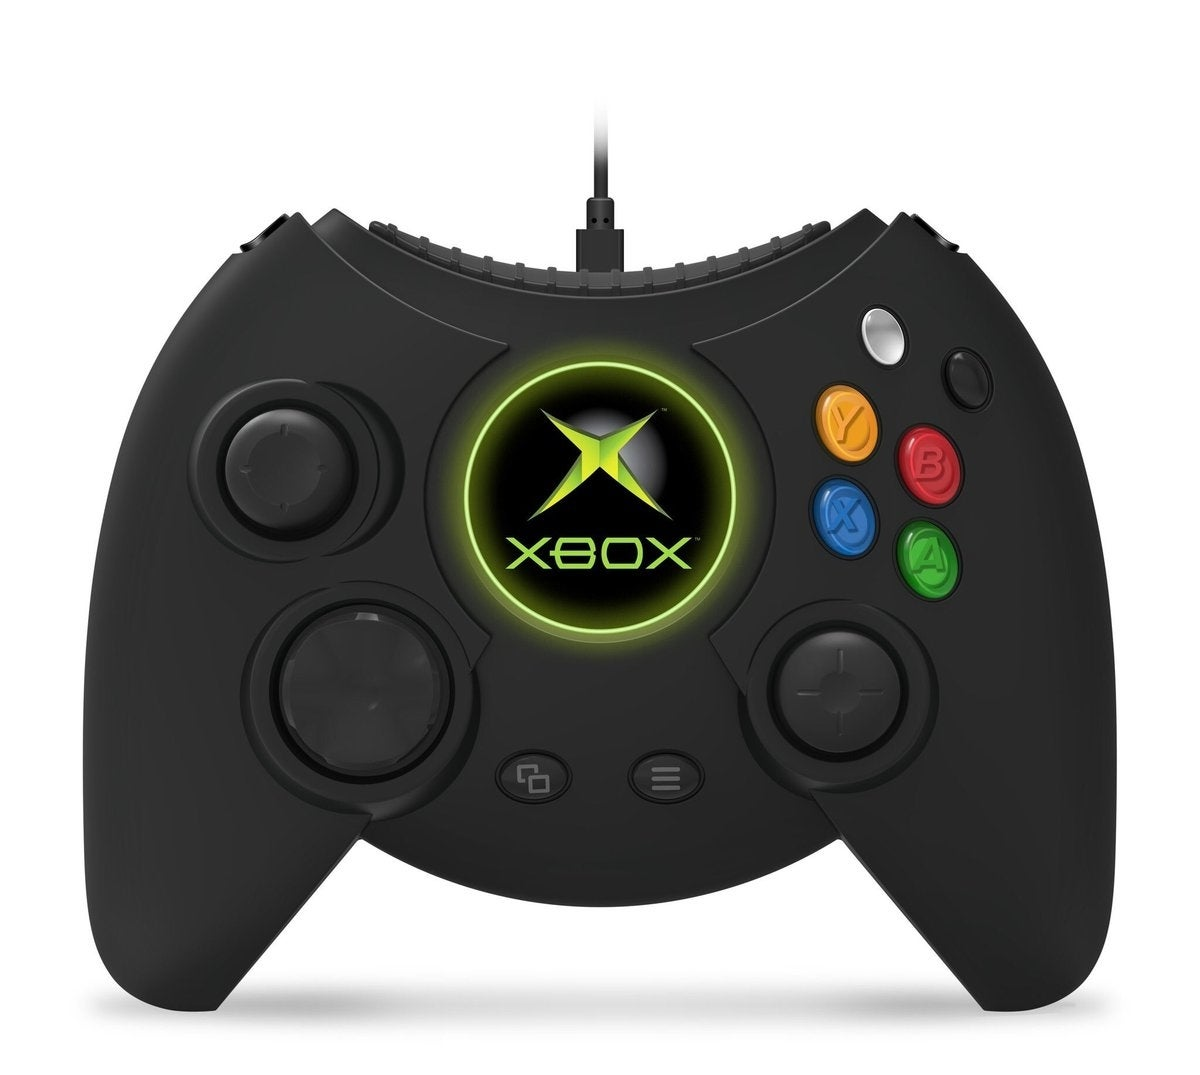 The Oversized Original Xbox Controller-The Duke-is Back